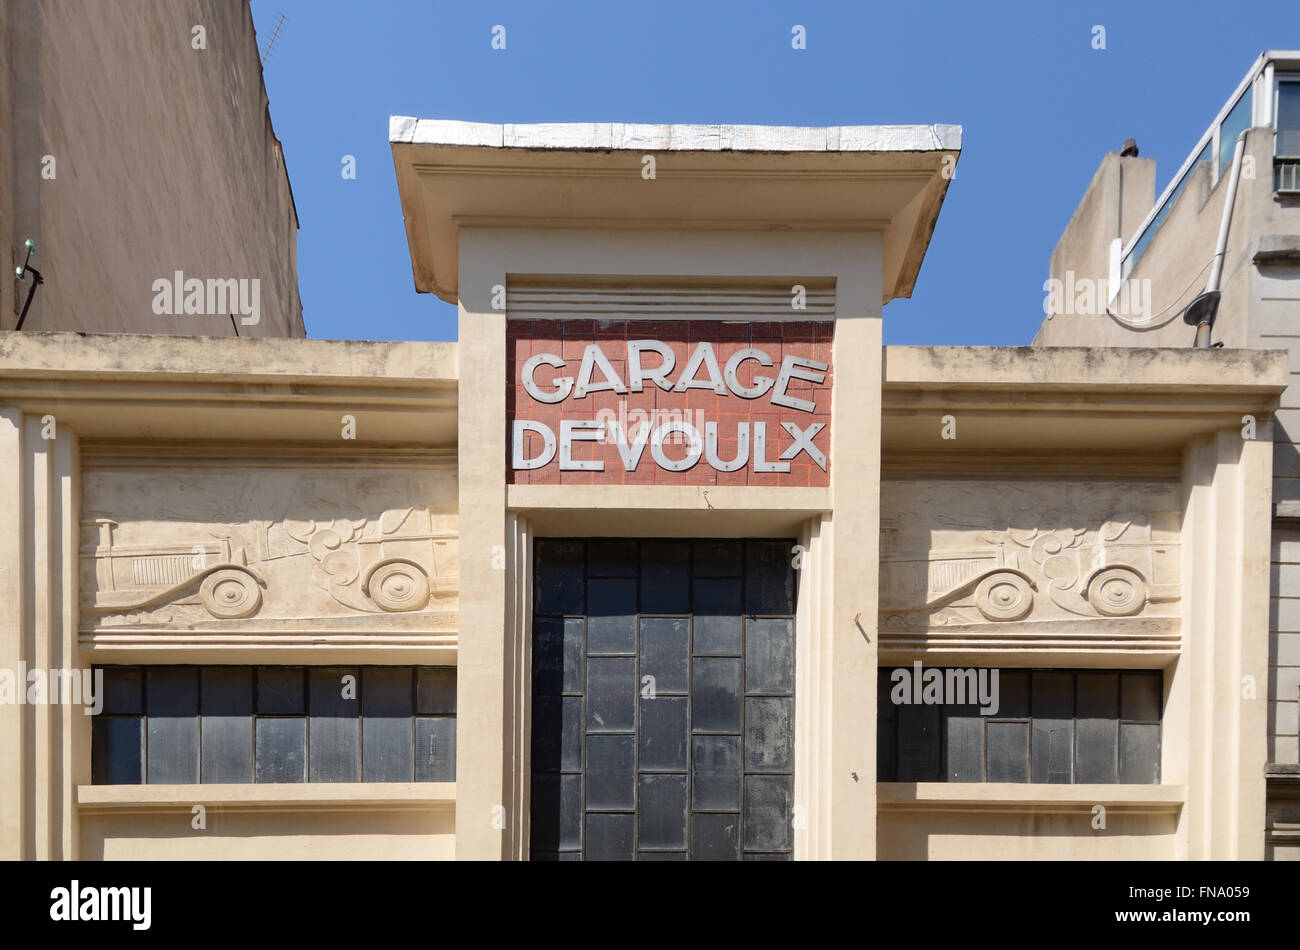 Fa ade of 1920s art deco garage devoulx with bas relief or for Deco francaise